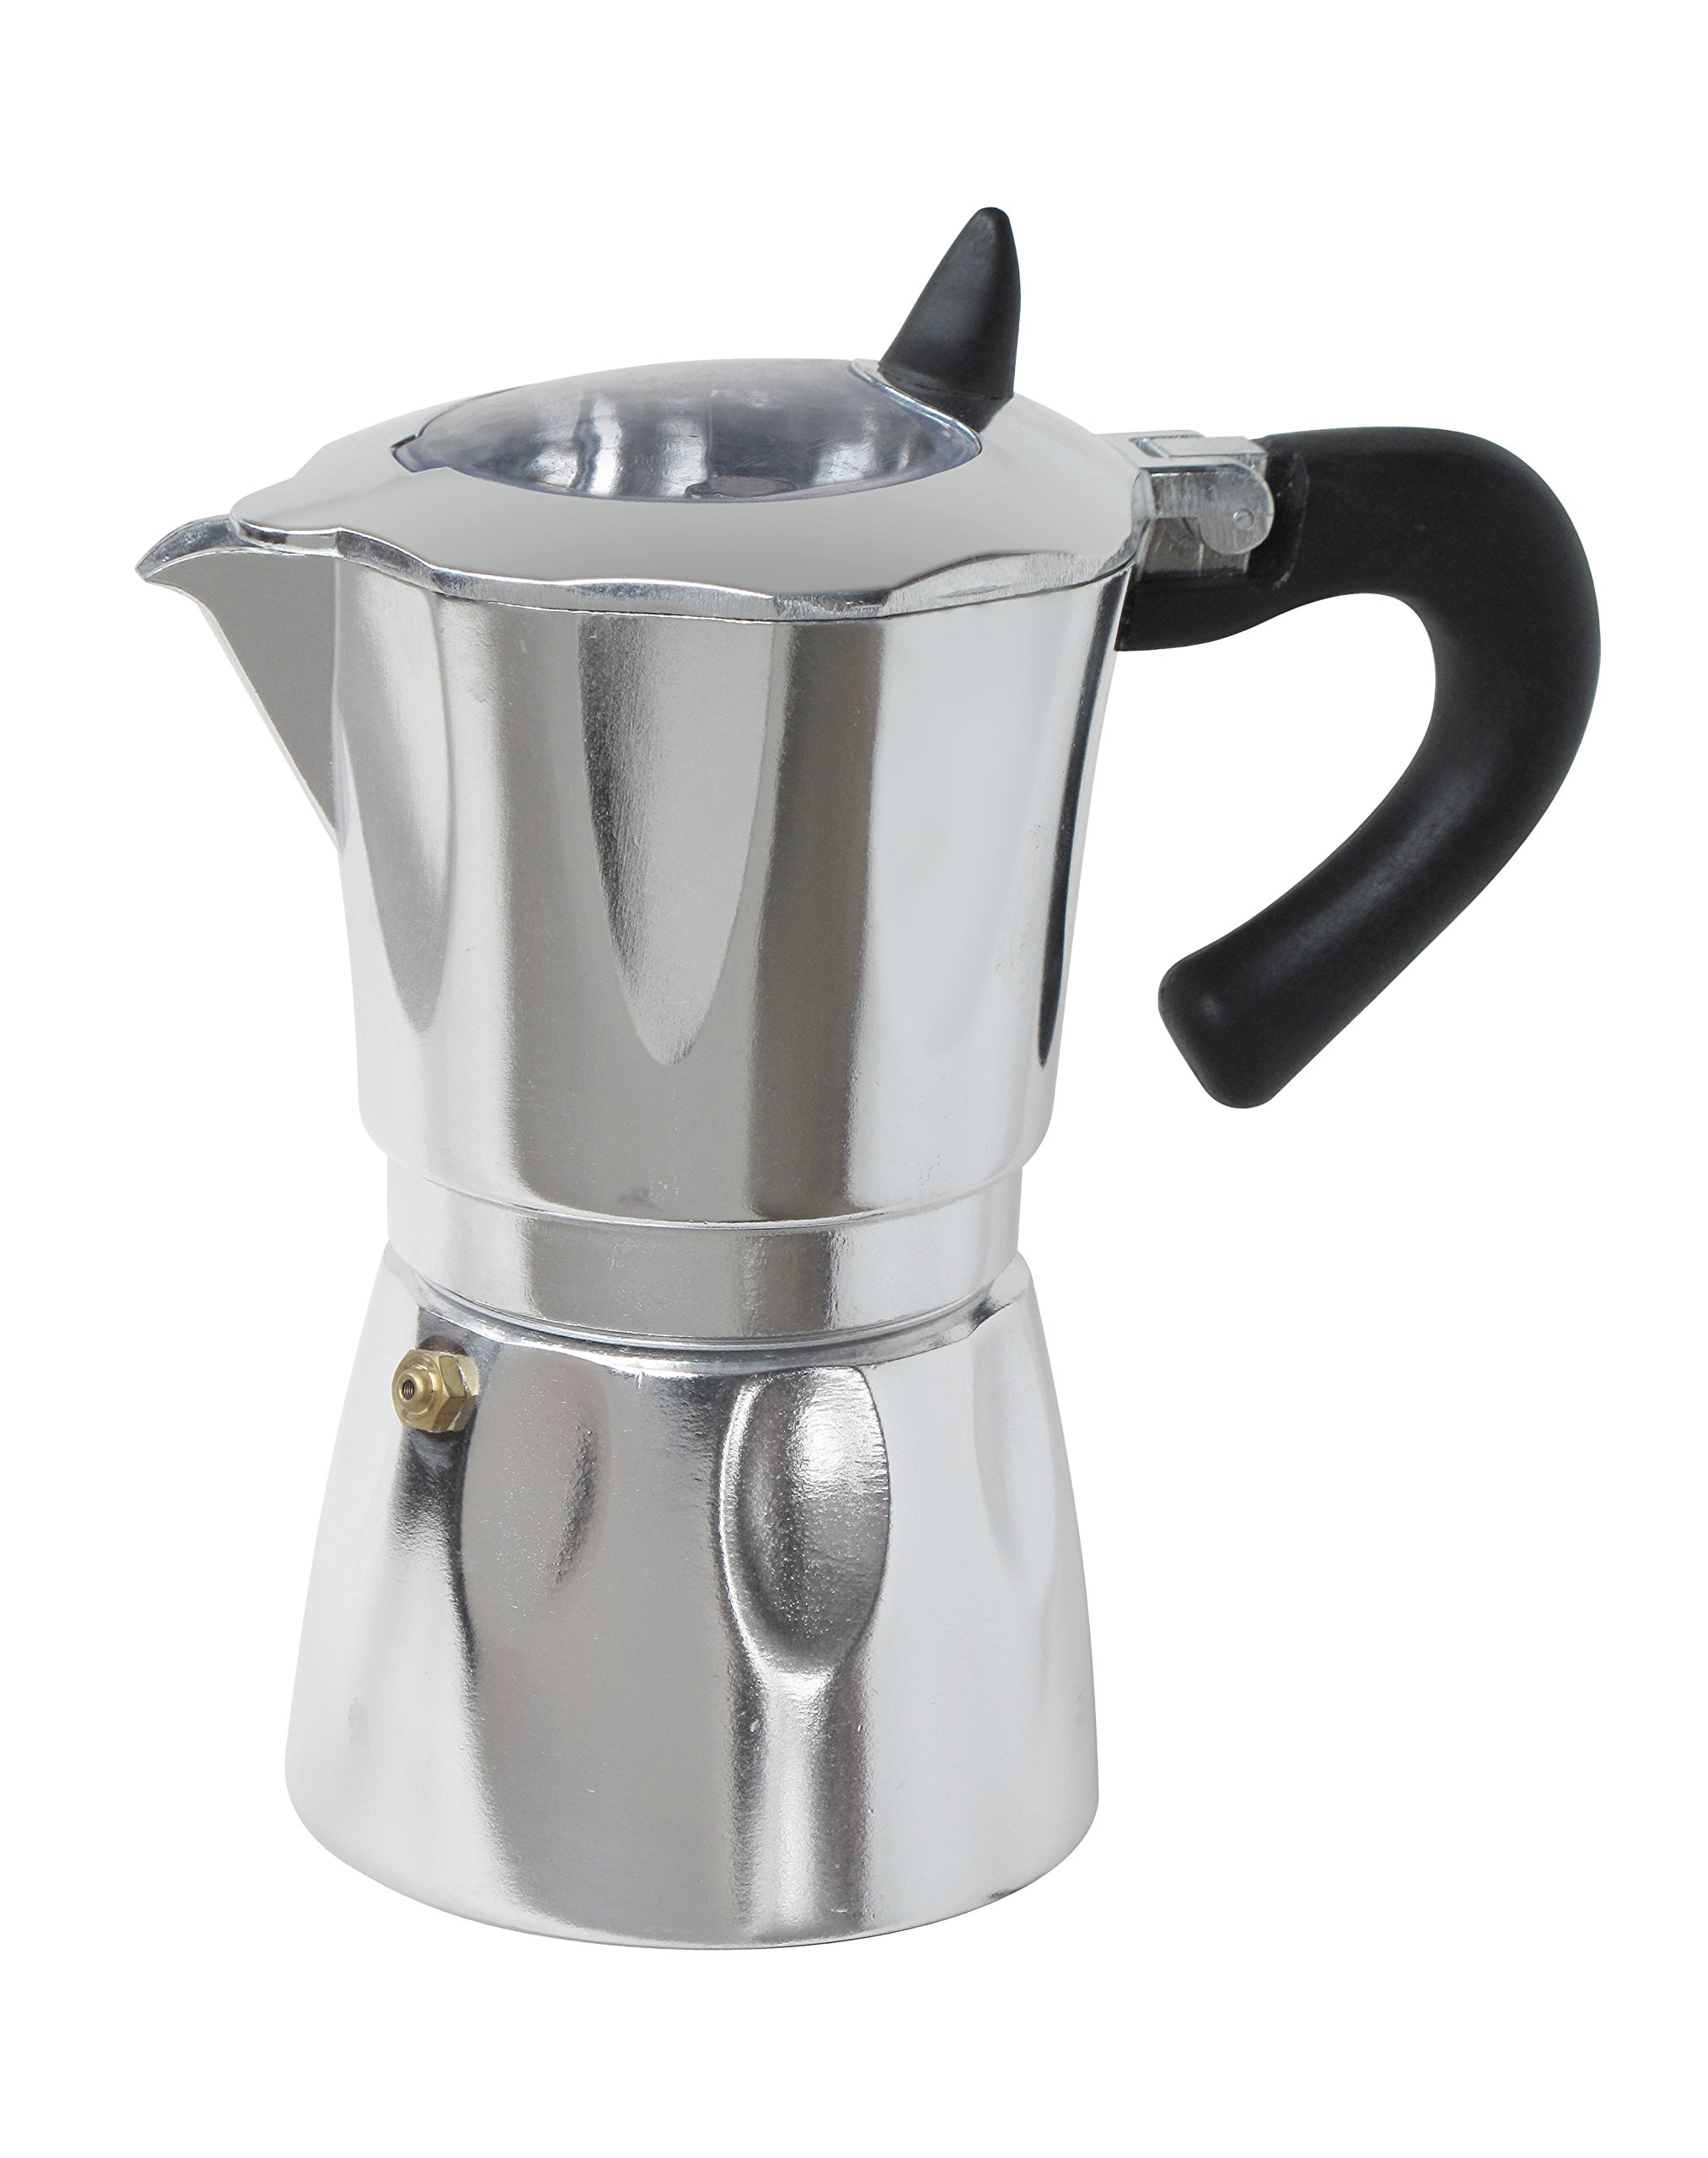 Cuisinox COFWD6 6 Cup Vista espresso Coffee Maker, Silver/Black/Clear